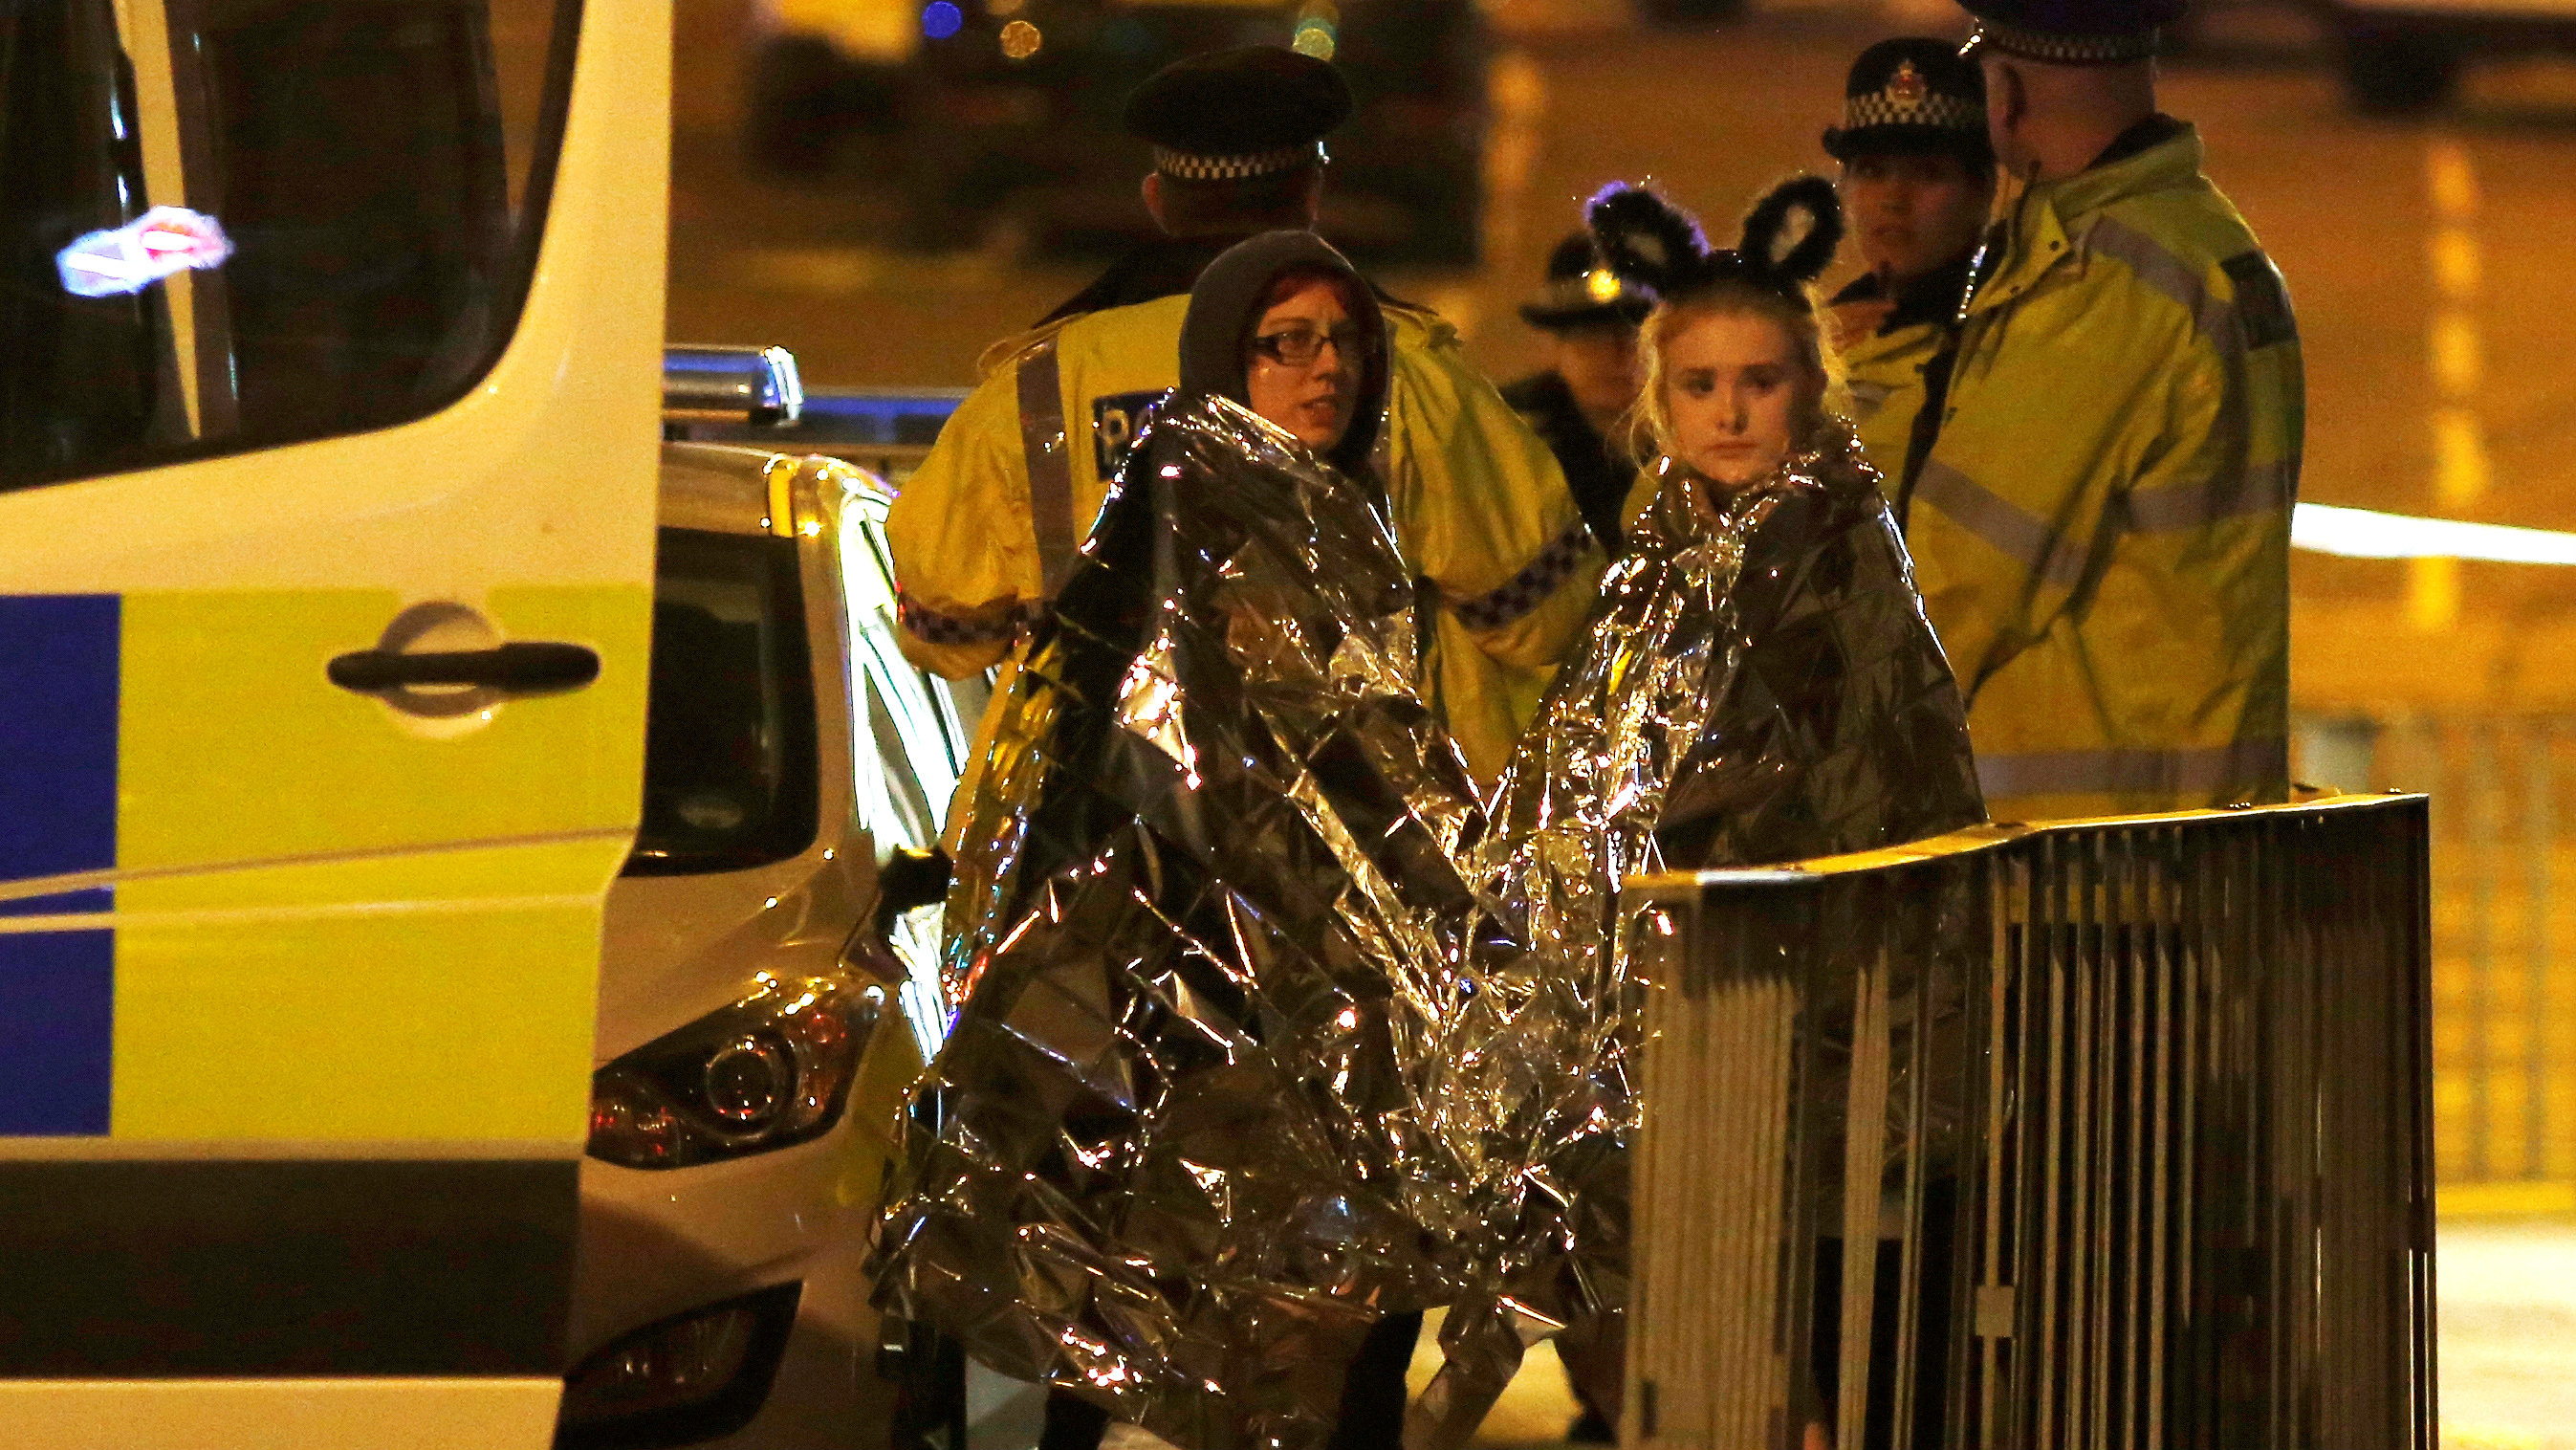 Two women wrapped in thermal blankets stand near the Manchester Arena following a terror attack on May 22